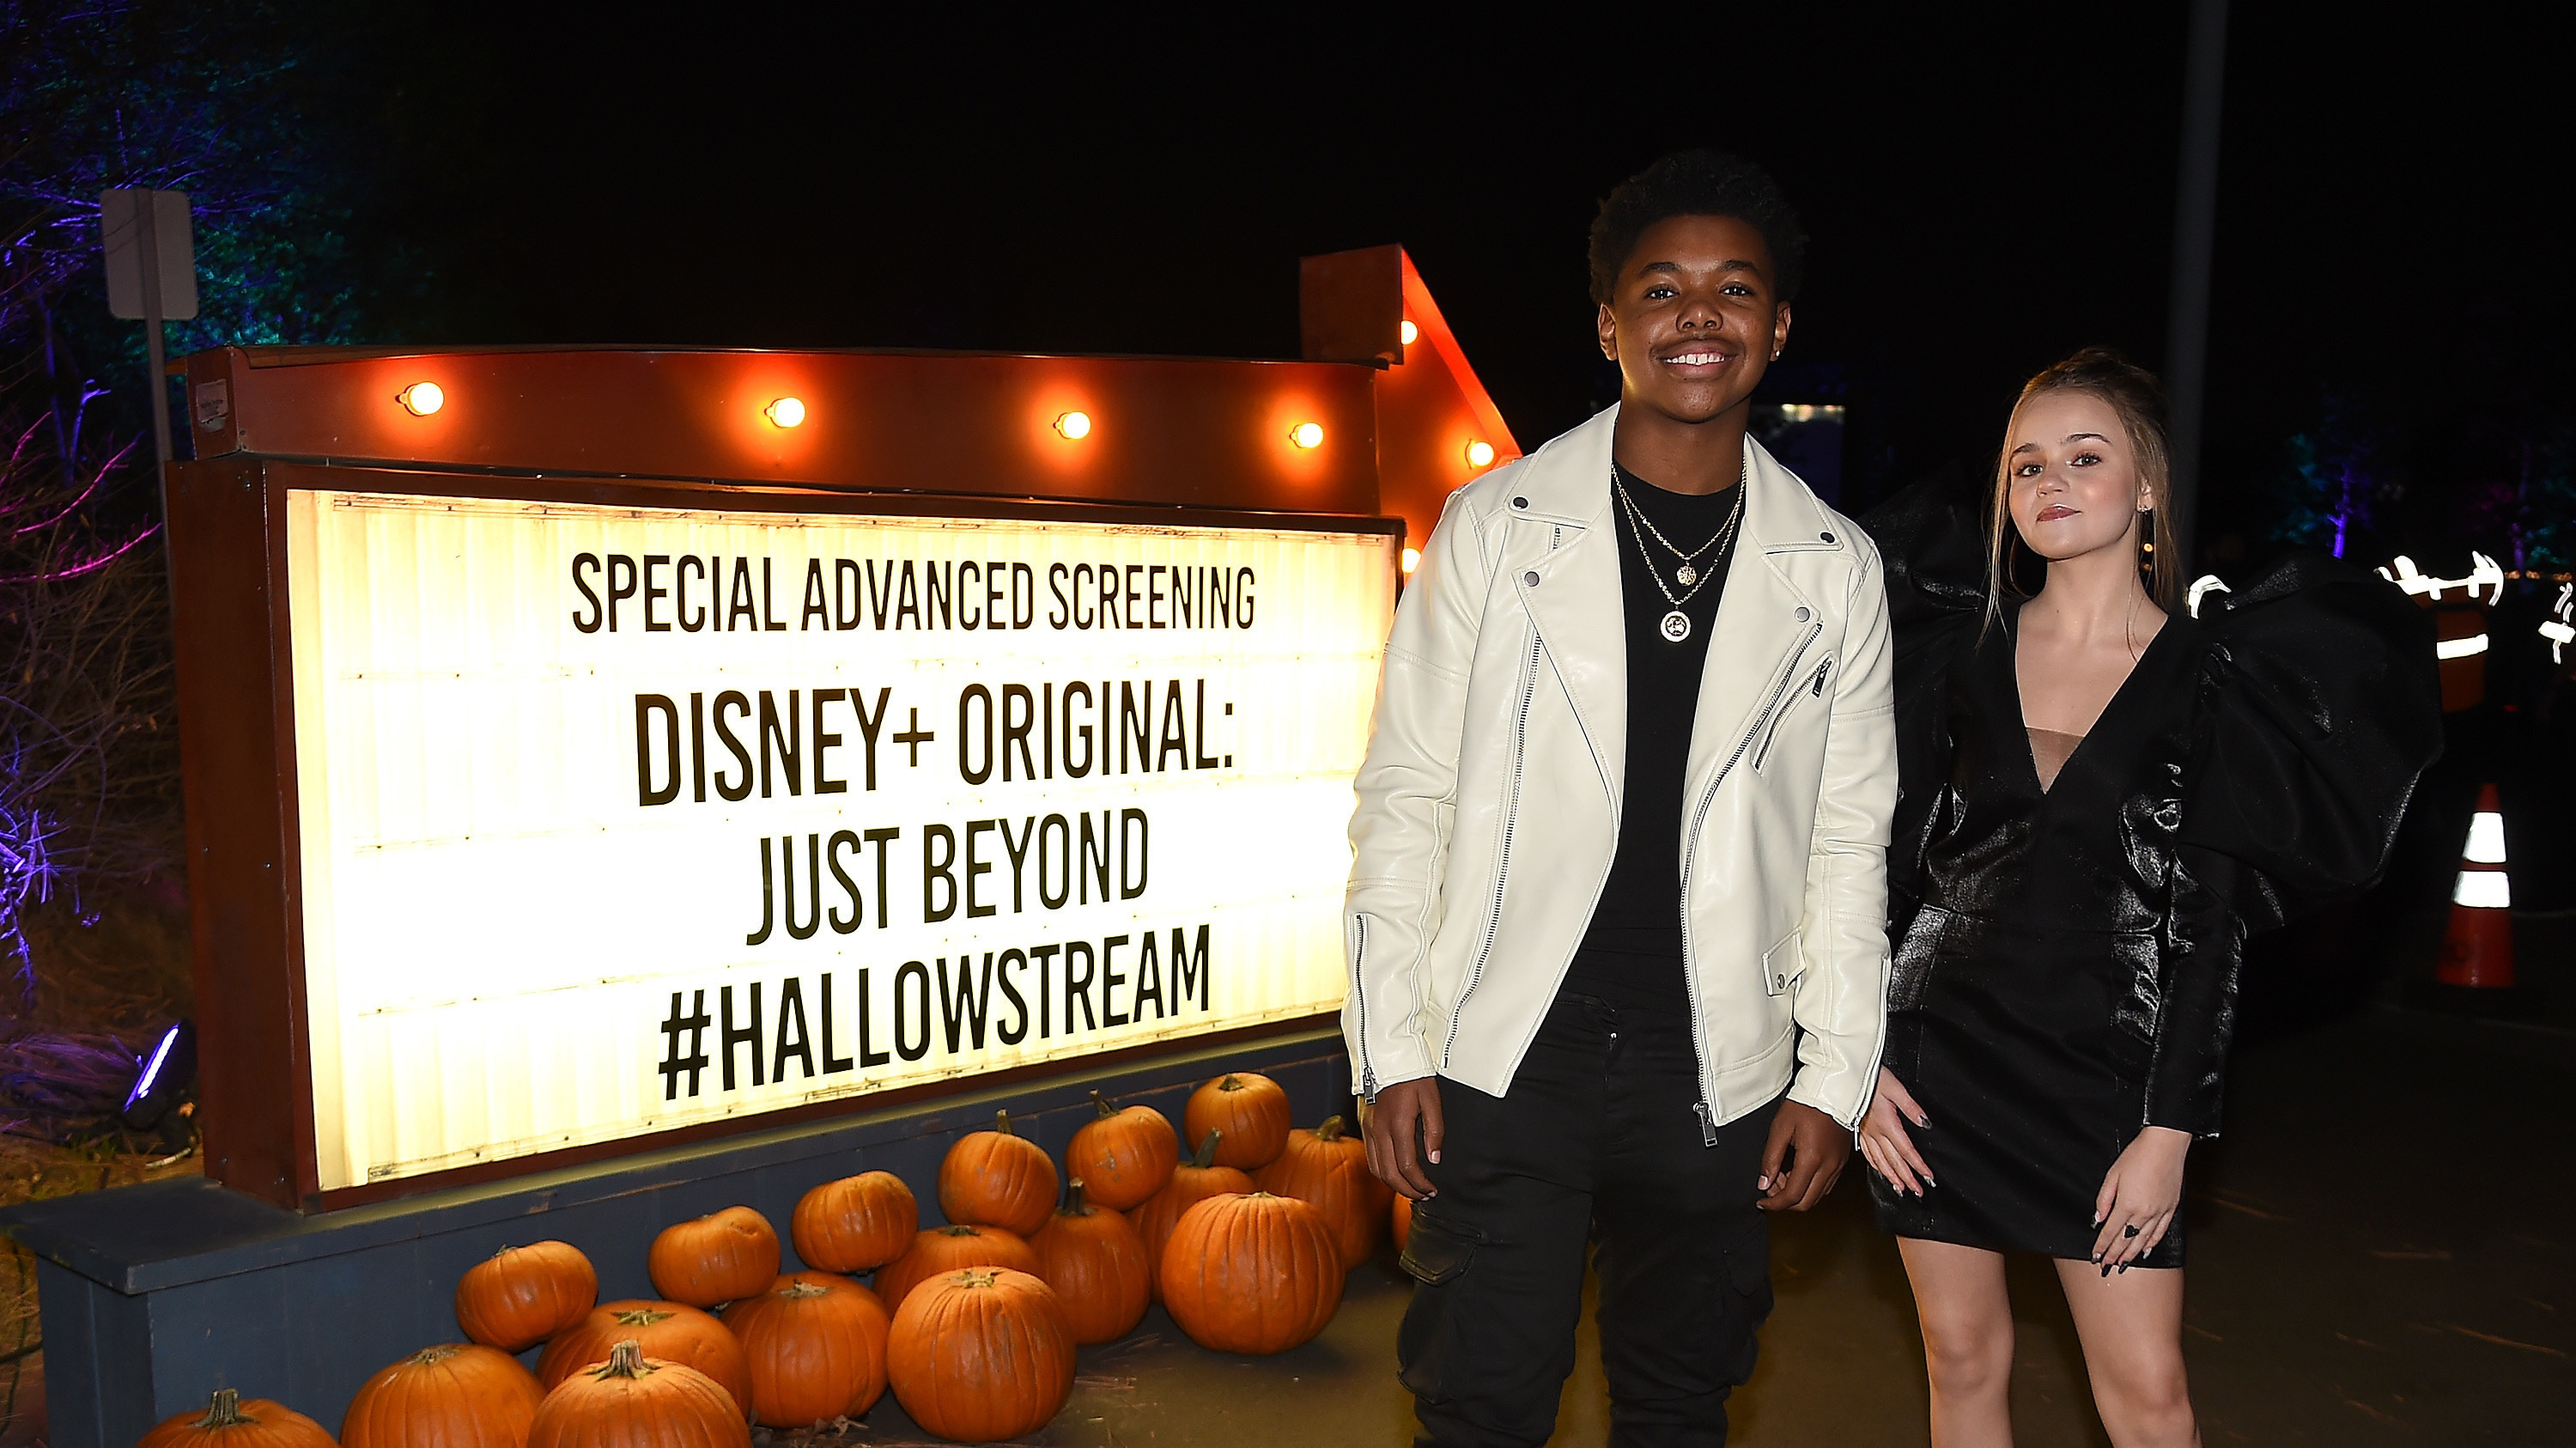 """JUST BEYOND - Stars of the R.L. Stine inspired Disney+ Original series """"Just Beyond"""" attended the Drive-In Premiere Event at West Los Angeles College, Tuesday, October 12. All episodes of """"Just Beyond"""" are available to stream Wednesday, October 13 on Disney+. (Disney/Frank Micelotta/PictureGroup) CEDRIC JOE, MEGAN STOTT"""